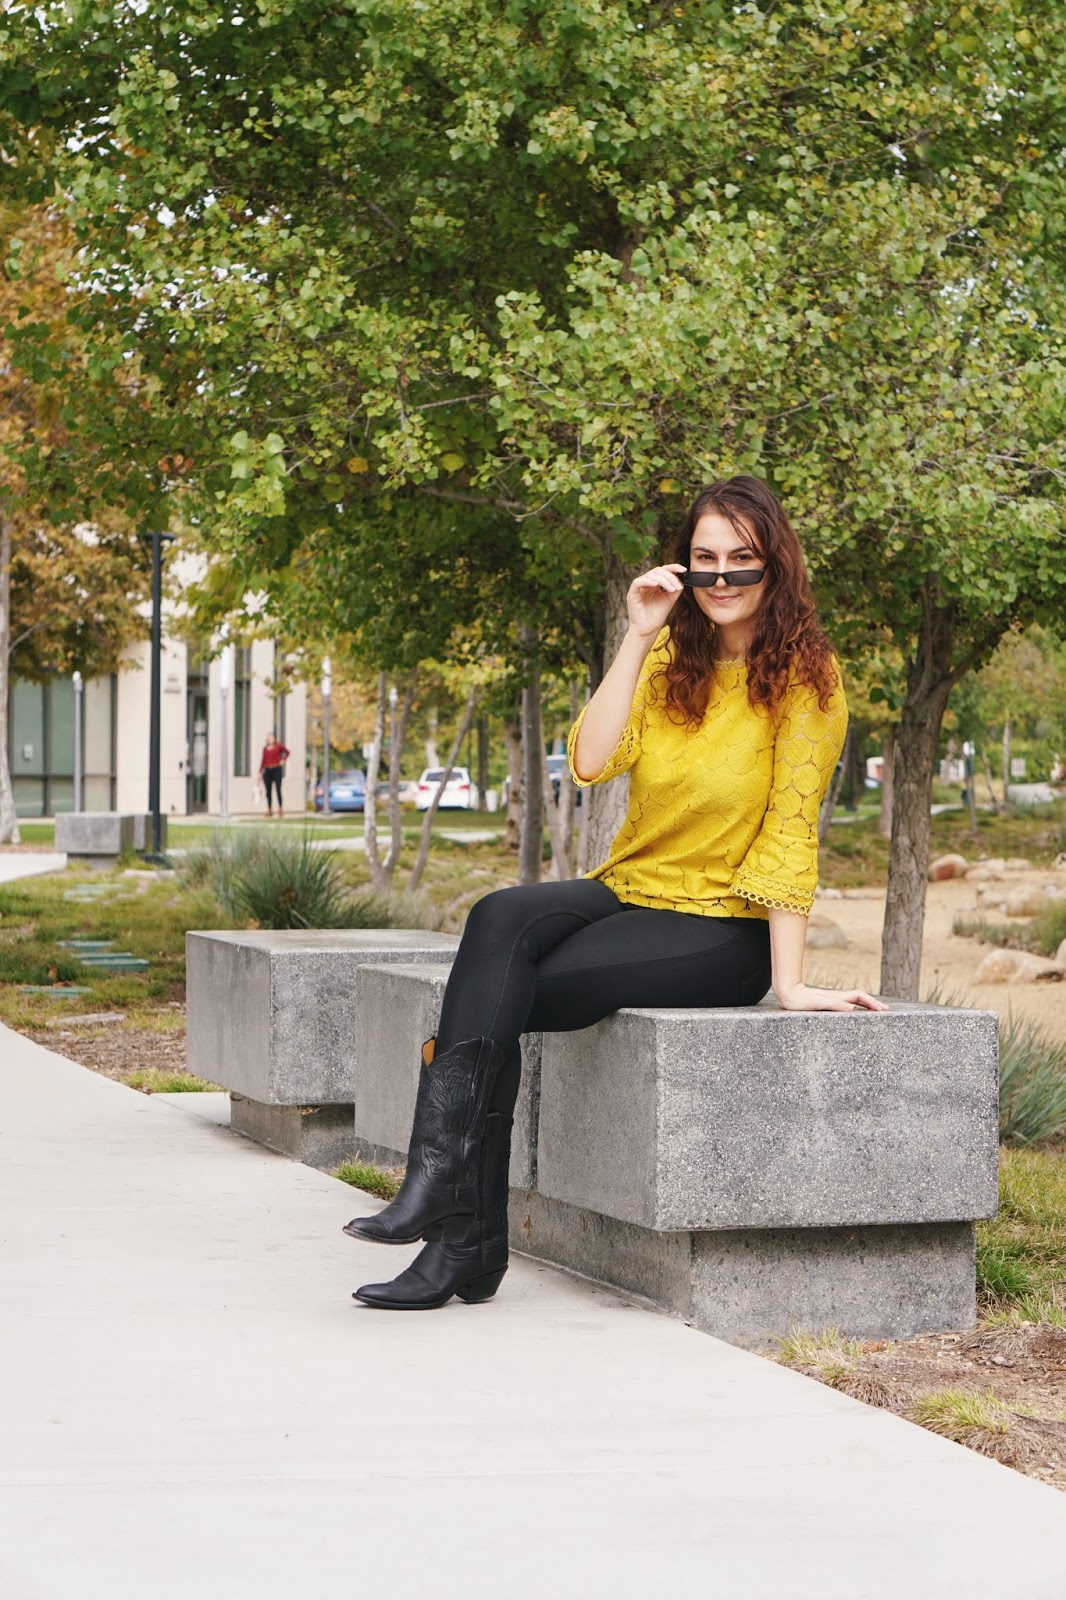 Downtown San Diego Travel influencer and California blogger shares her self-employment journey as a blogging coach, social media consultant. Vista Library, California